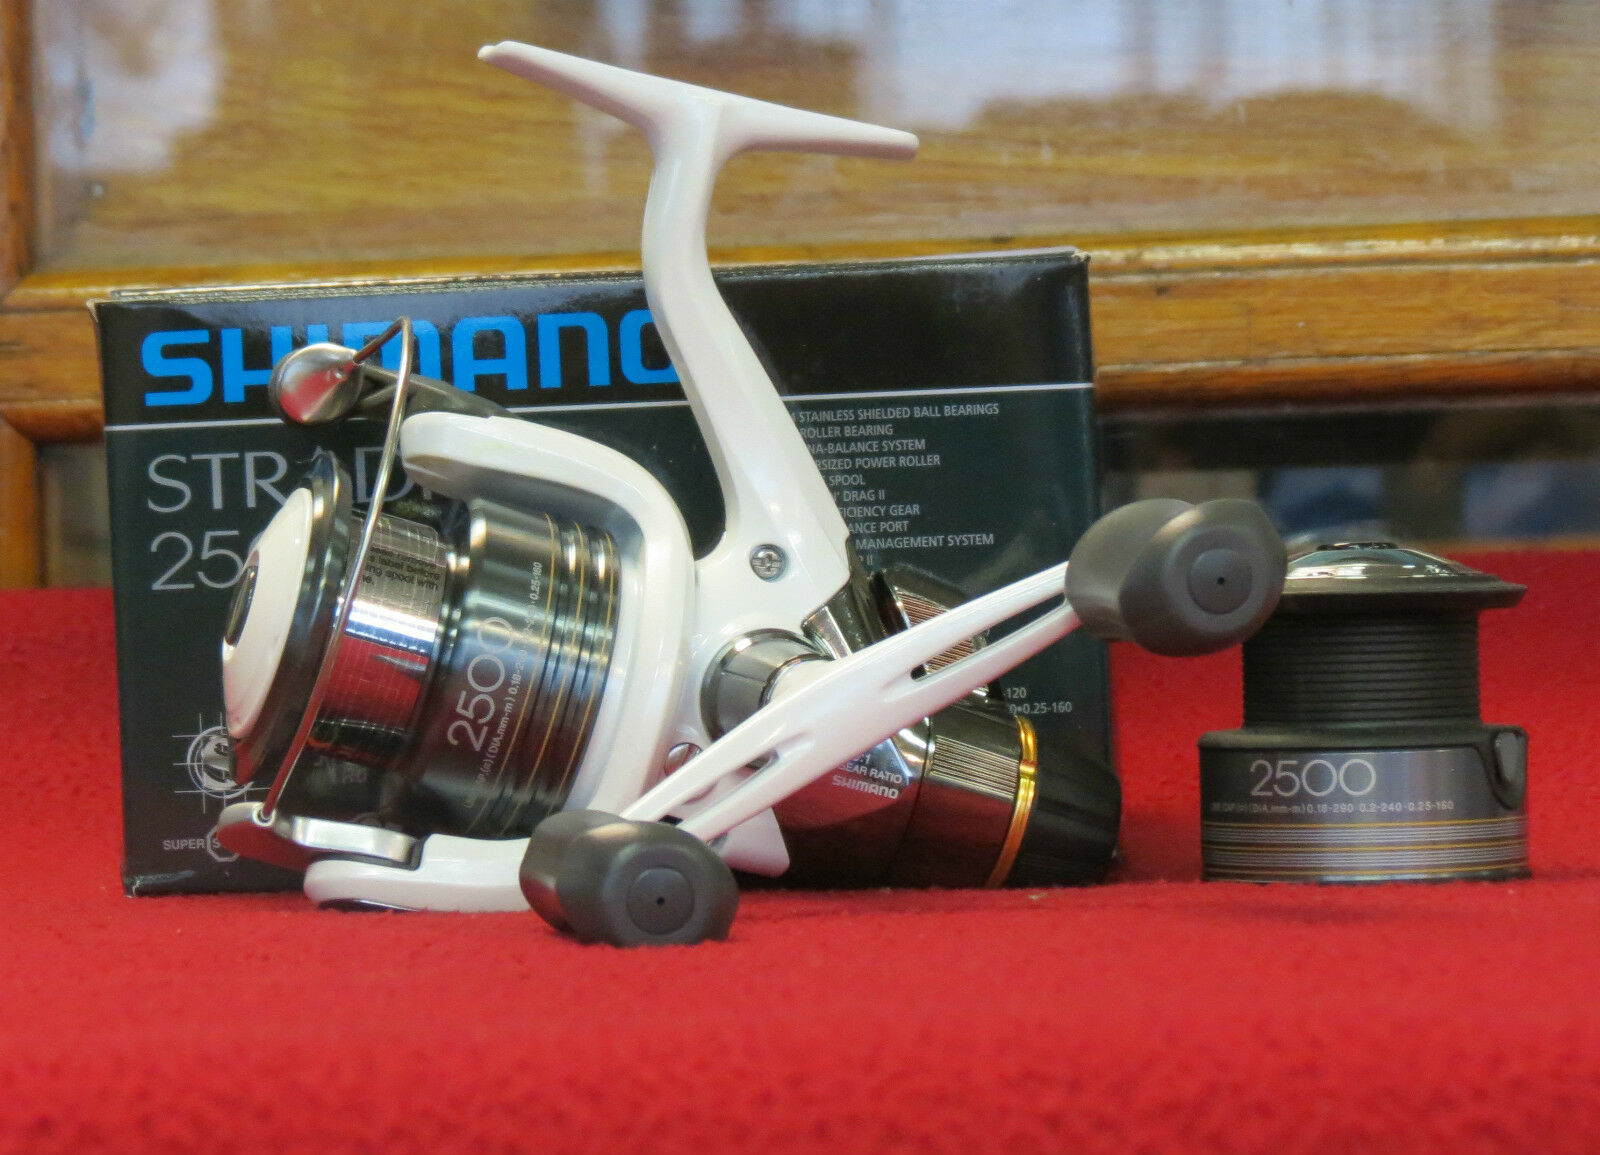 Moulinet shimano stradic gtm-rc 2500 gtm-rc stradic fcd9ca